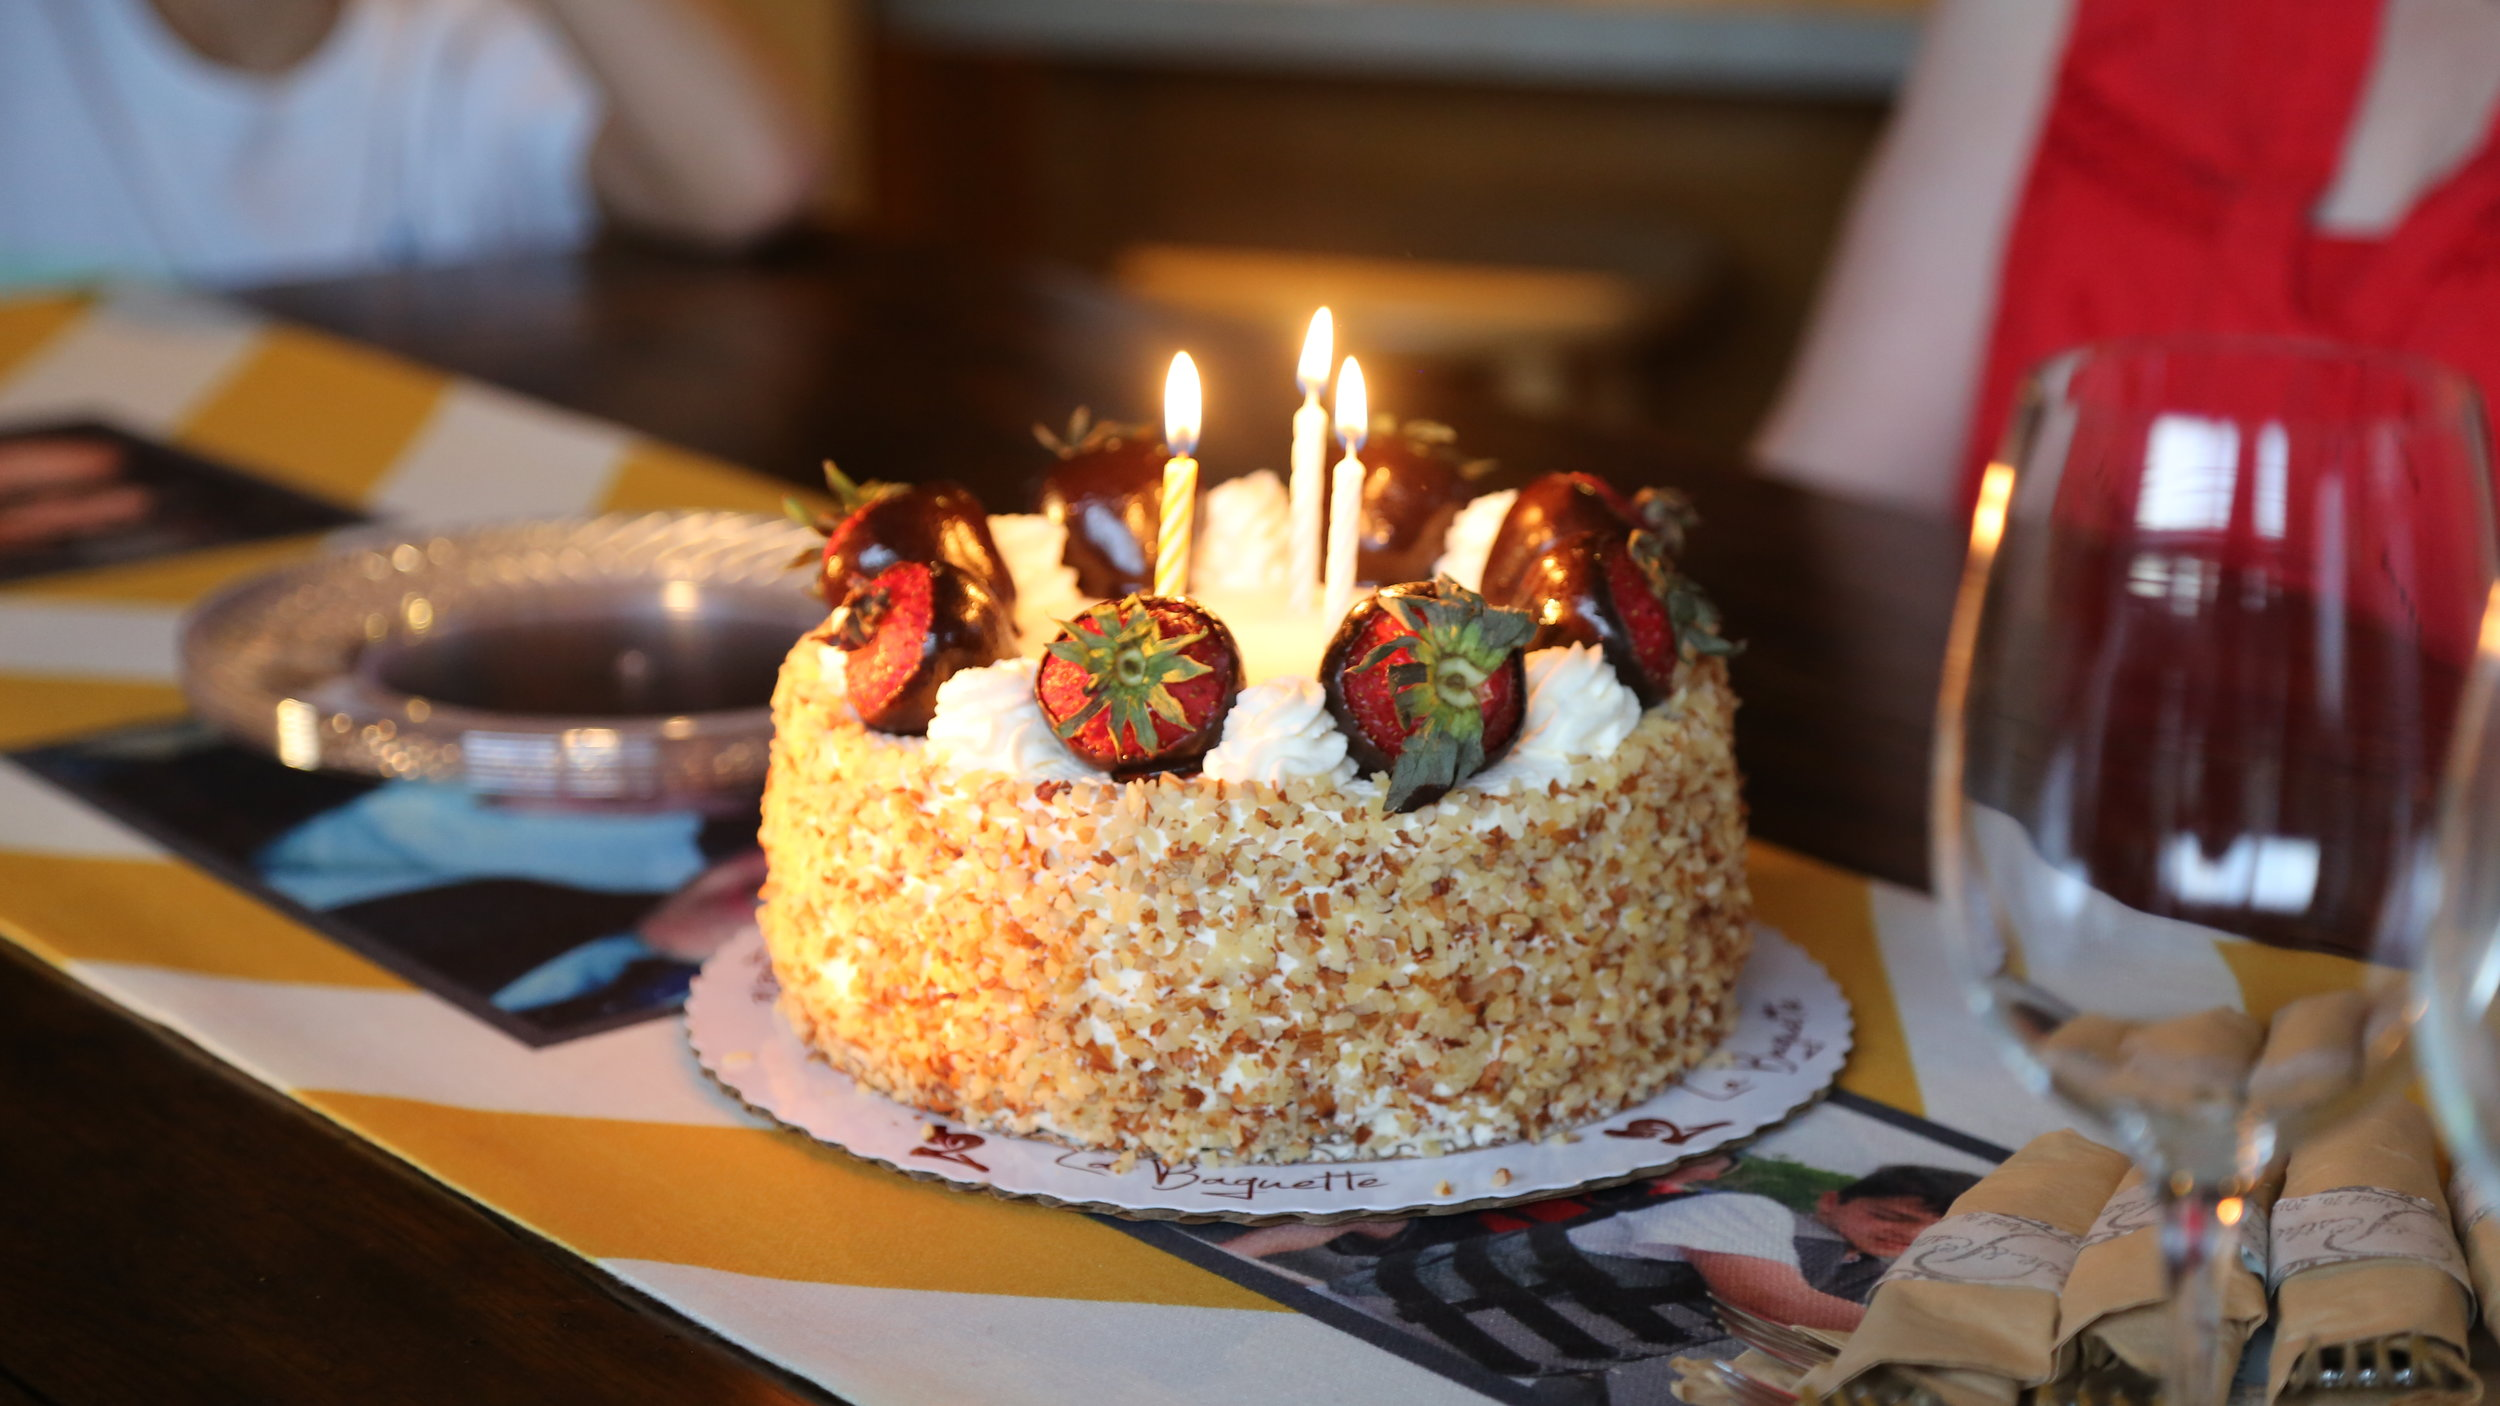 candle birthday cake with strawberries and cream.JPG